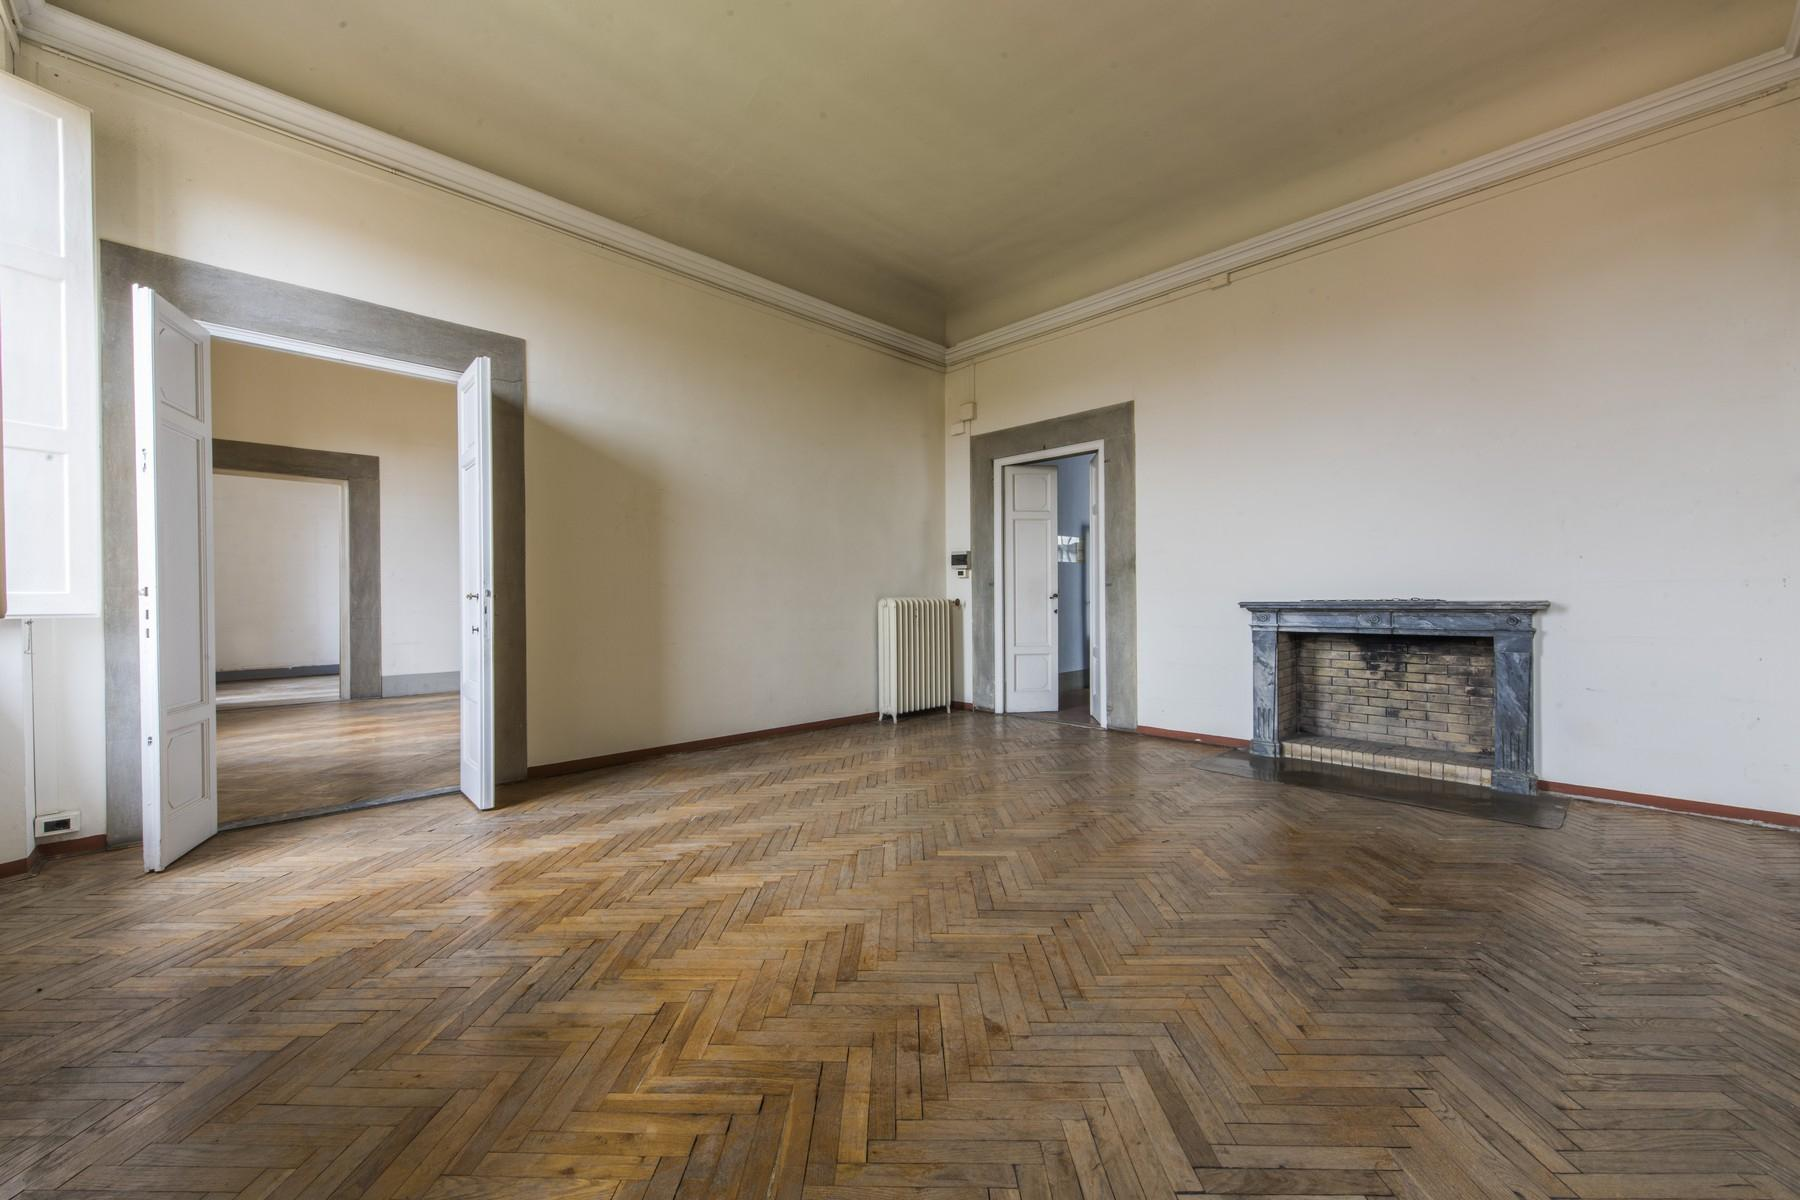 Magnificent 520sqm penthouse in a historic Florentine palazzo. - 5